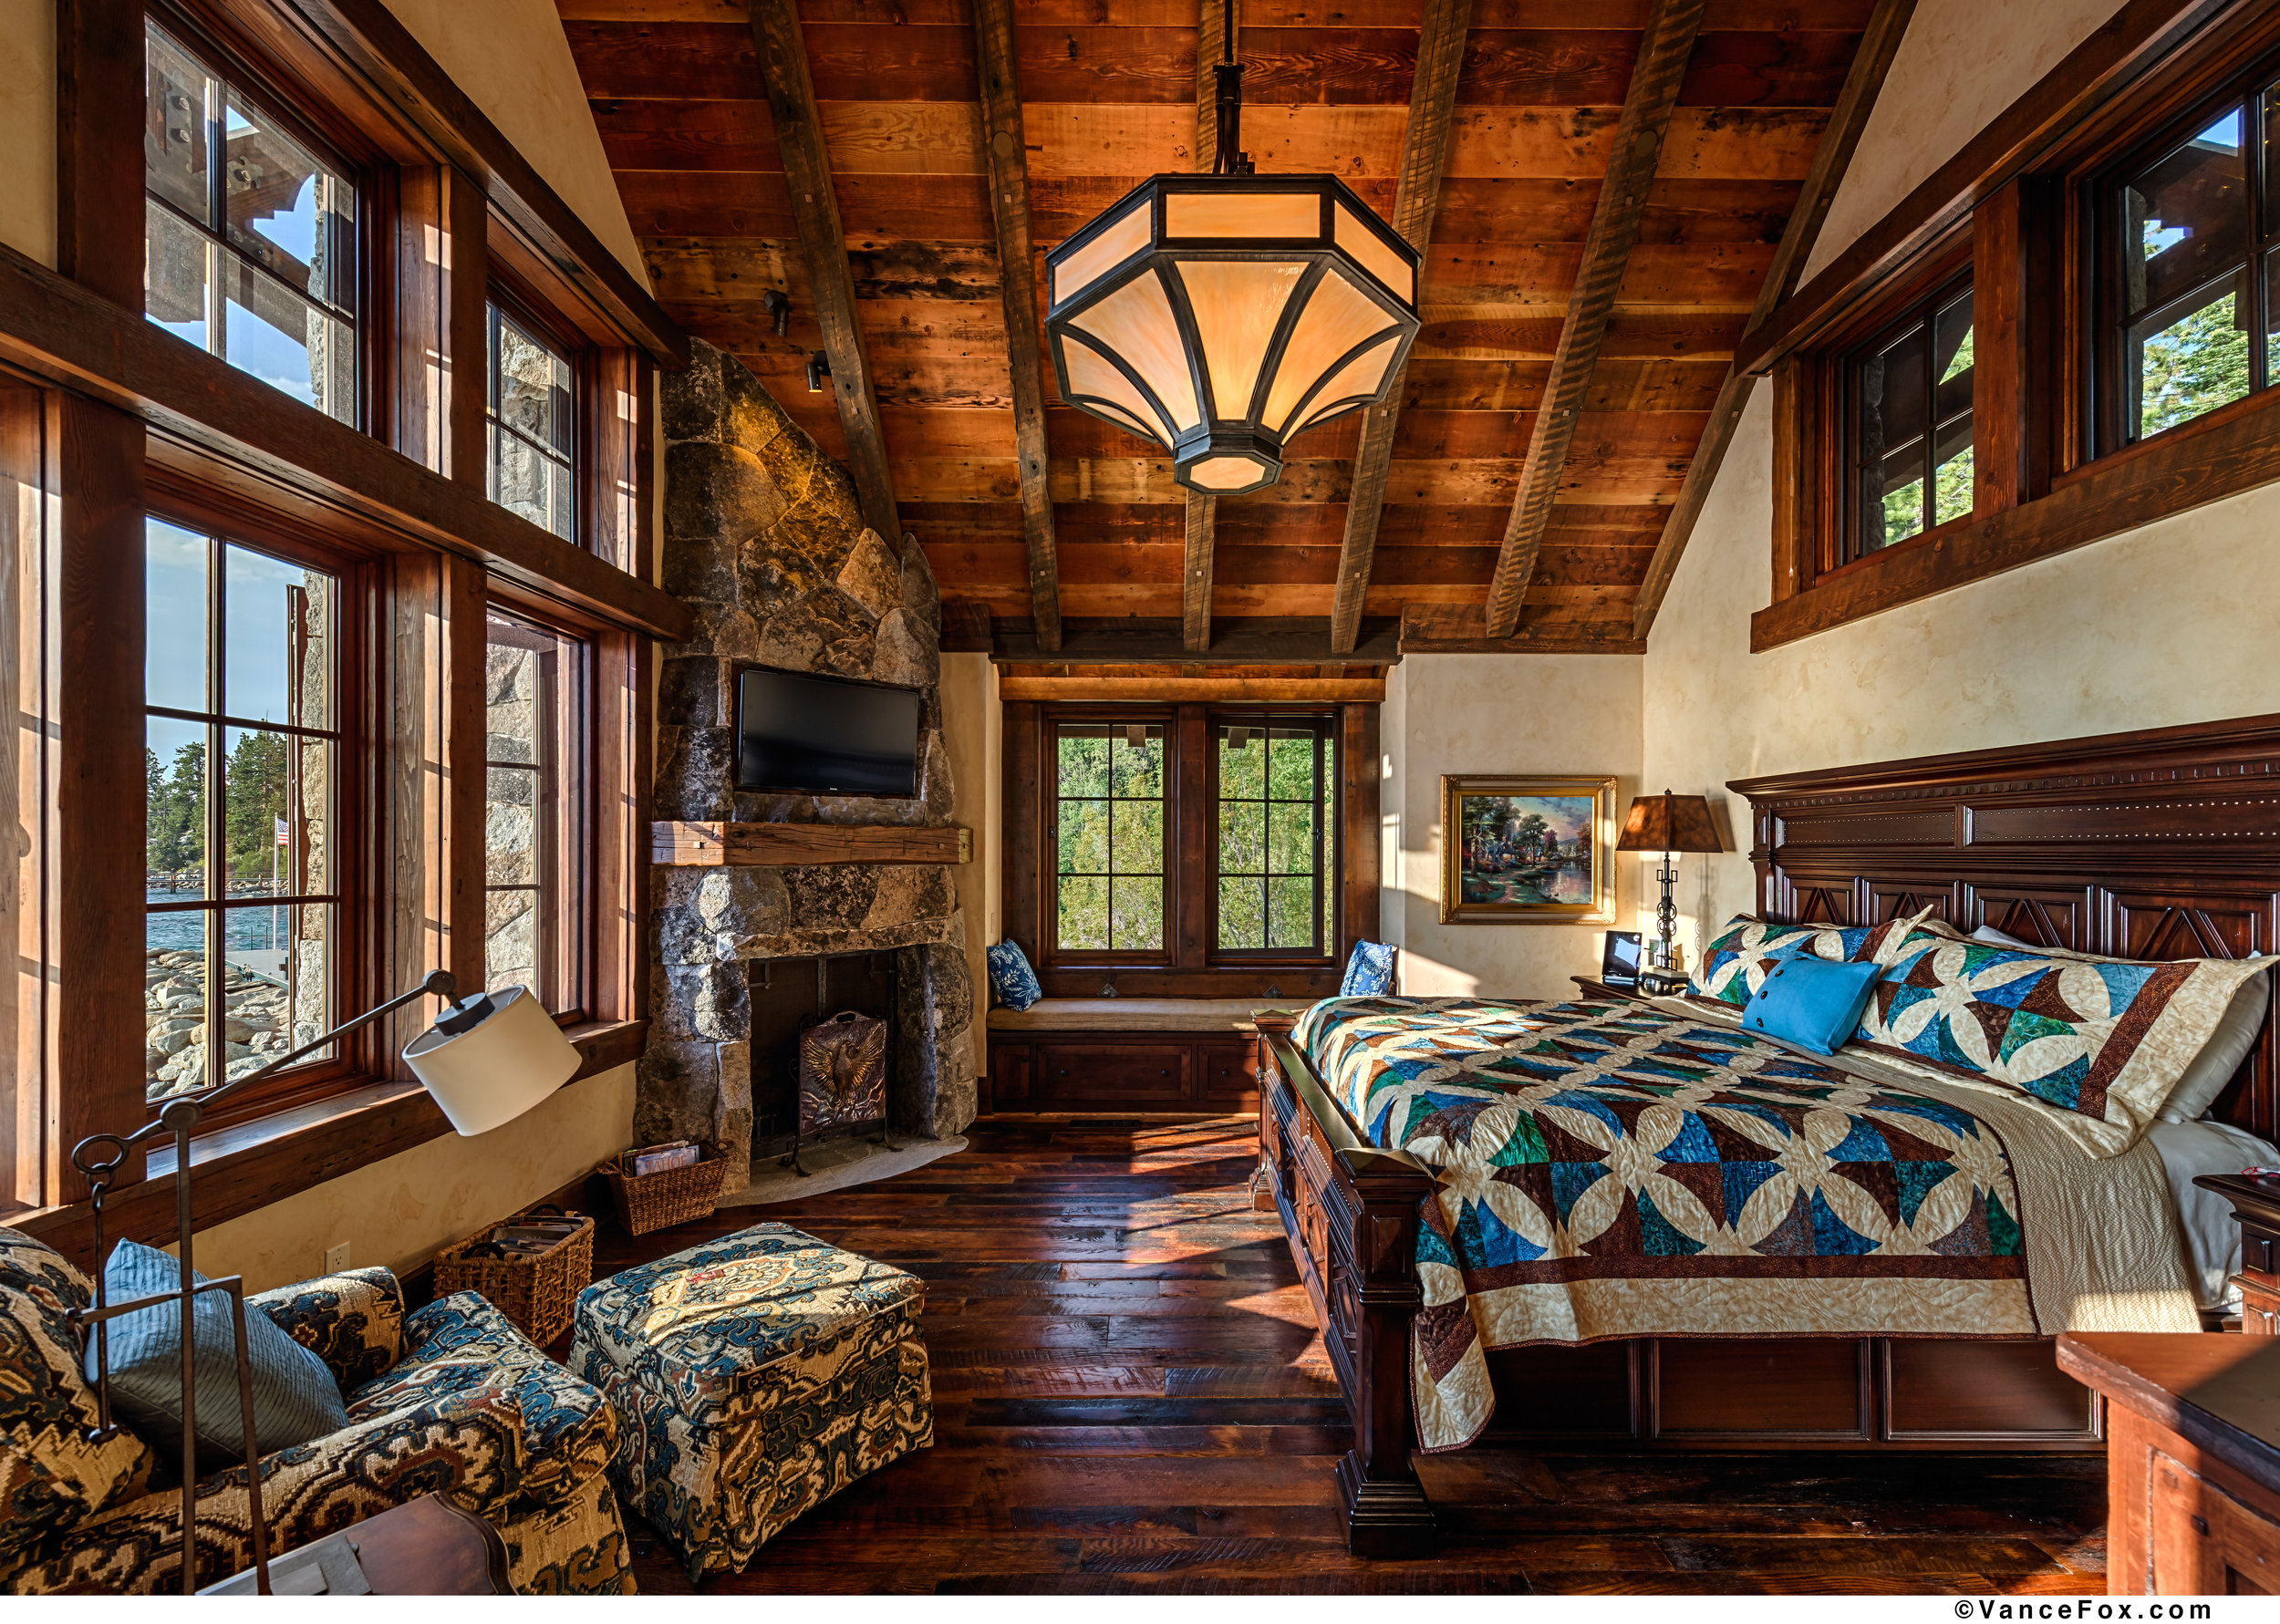 Craftsman style Hammerton chandelier in a warm mountain home. Zirbel Architects | Truckee, CA